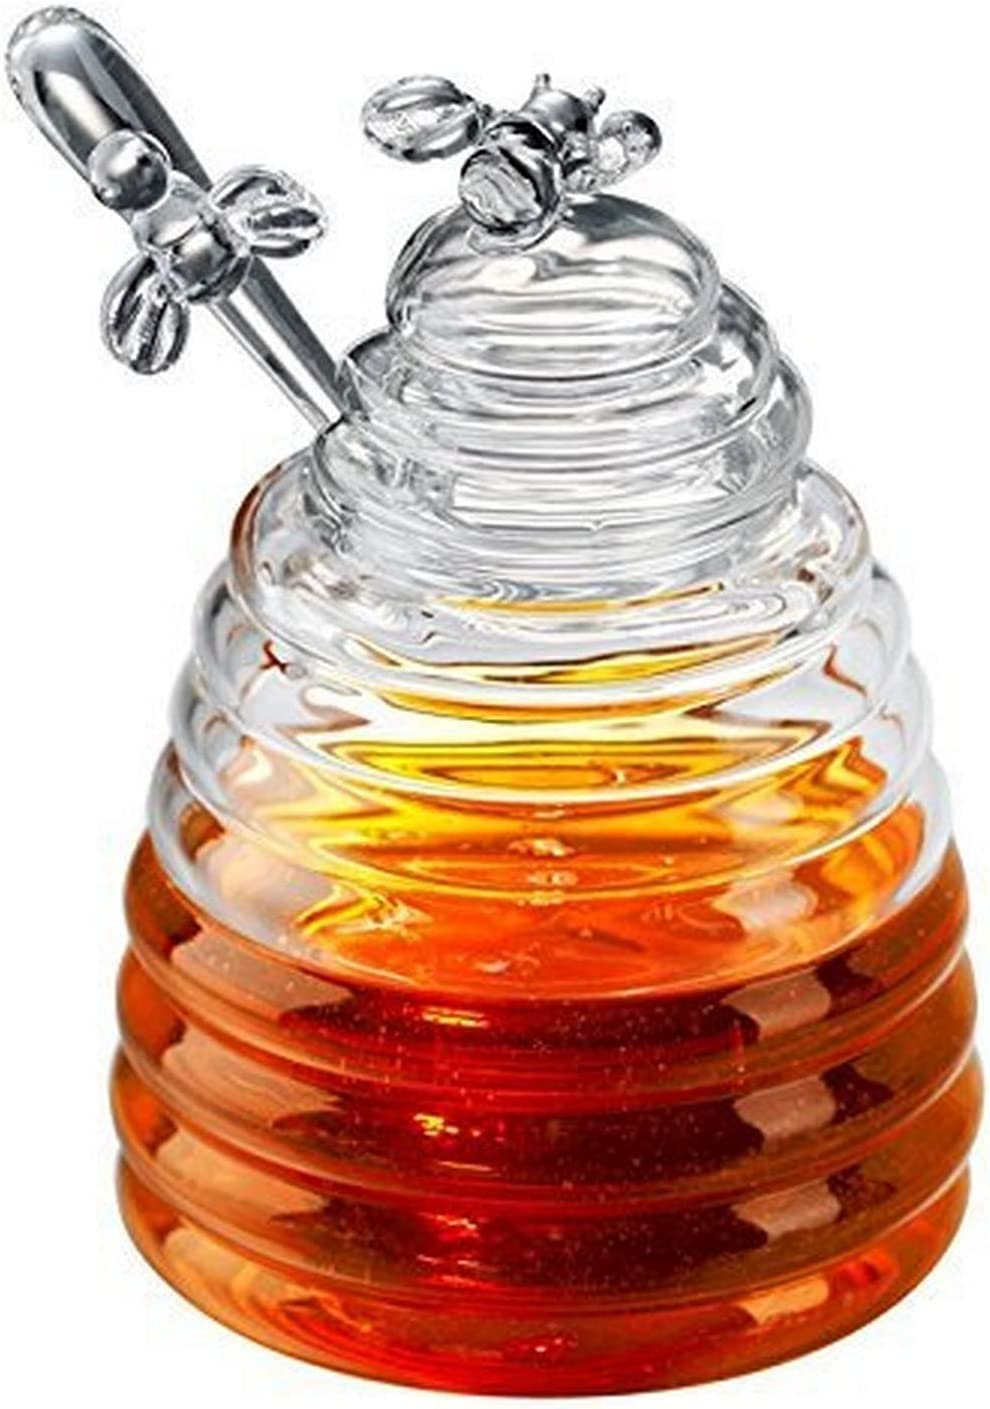 Artland Honey Bee Pot With Dipper(Gift Boxed), 15 oz, Clear